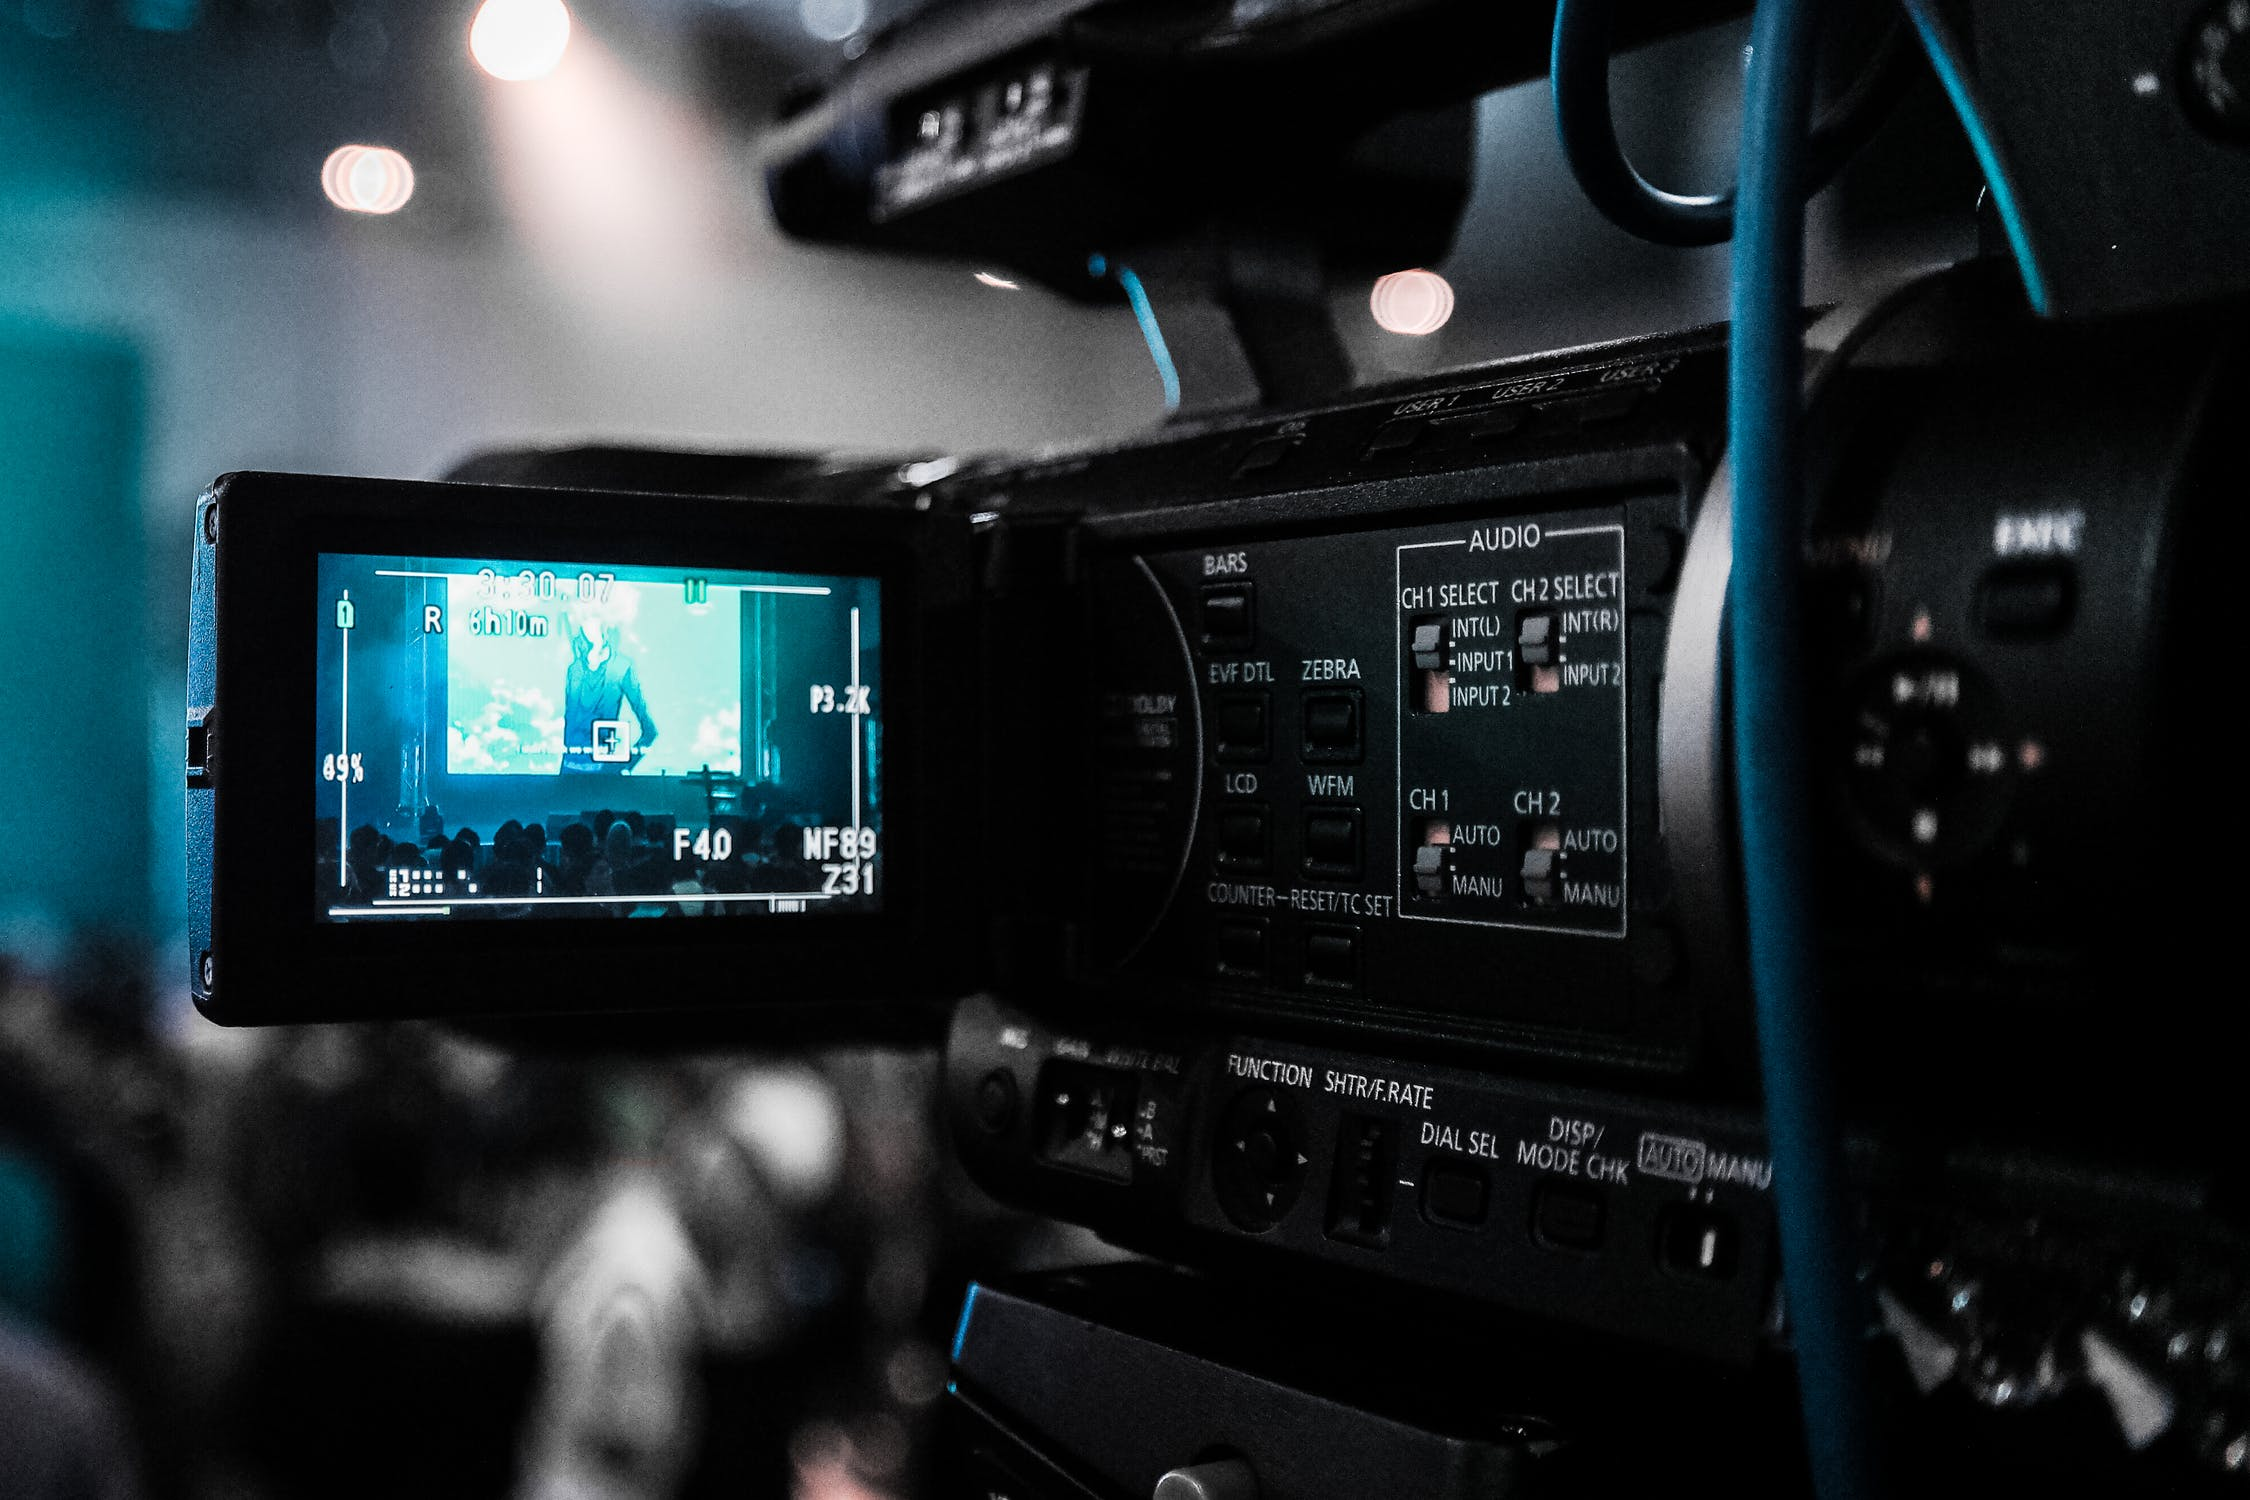 5 Best Free Online Video Editing Tools That Small Business Can Leverage Upon To Increase Their Brand Awareness